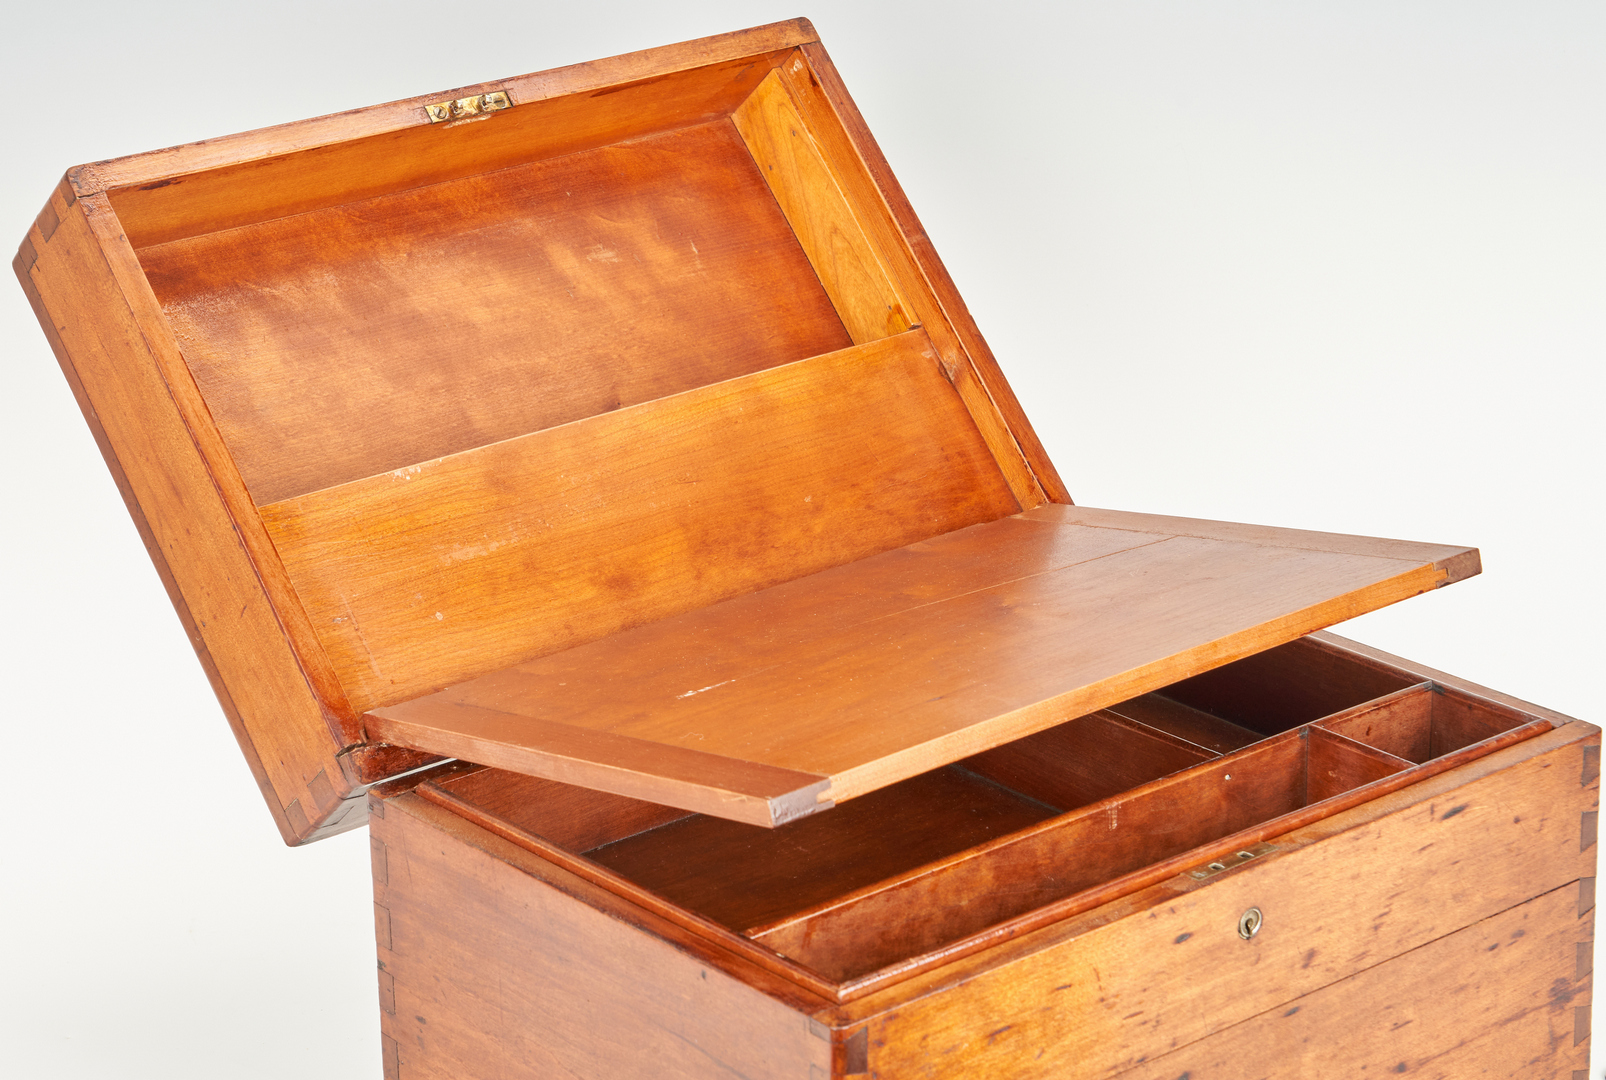 Lot 877: 5 Assorted Boxes, incl. Shaving Box